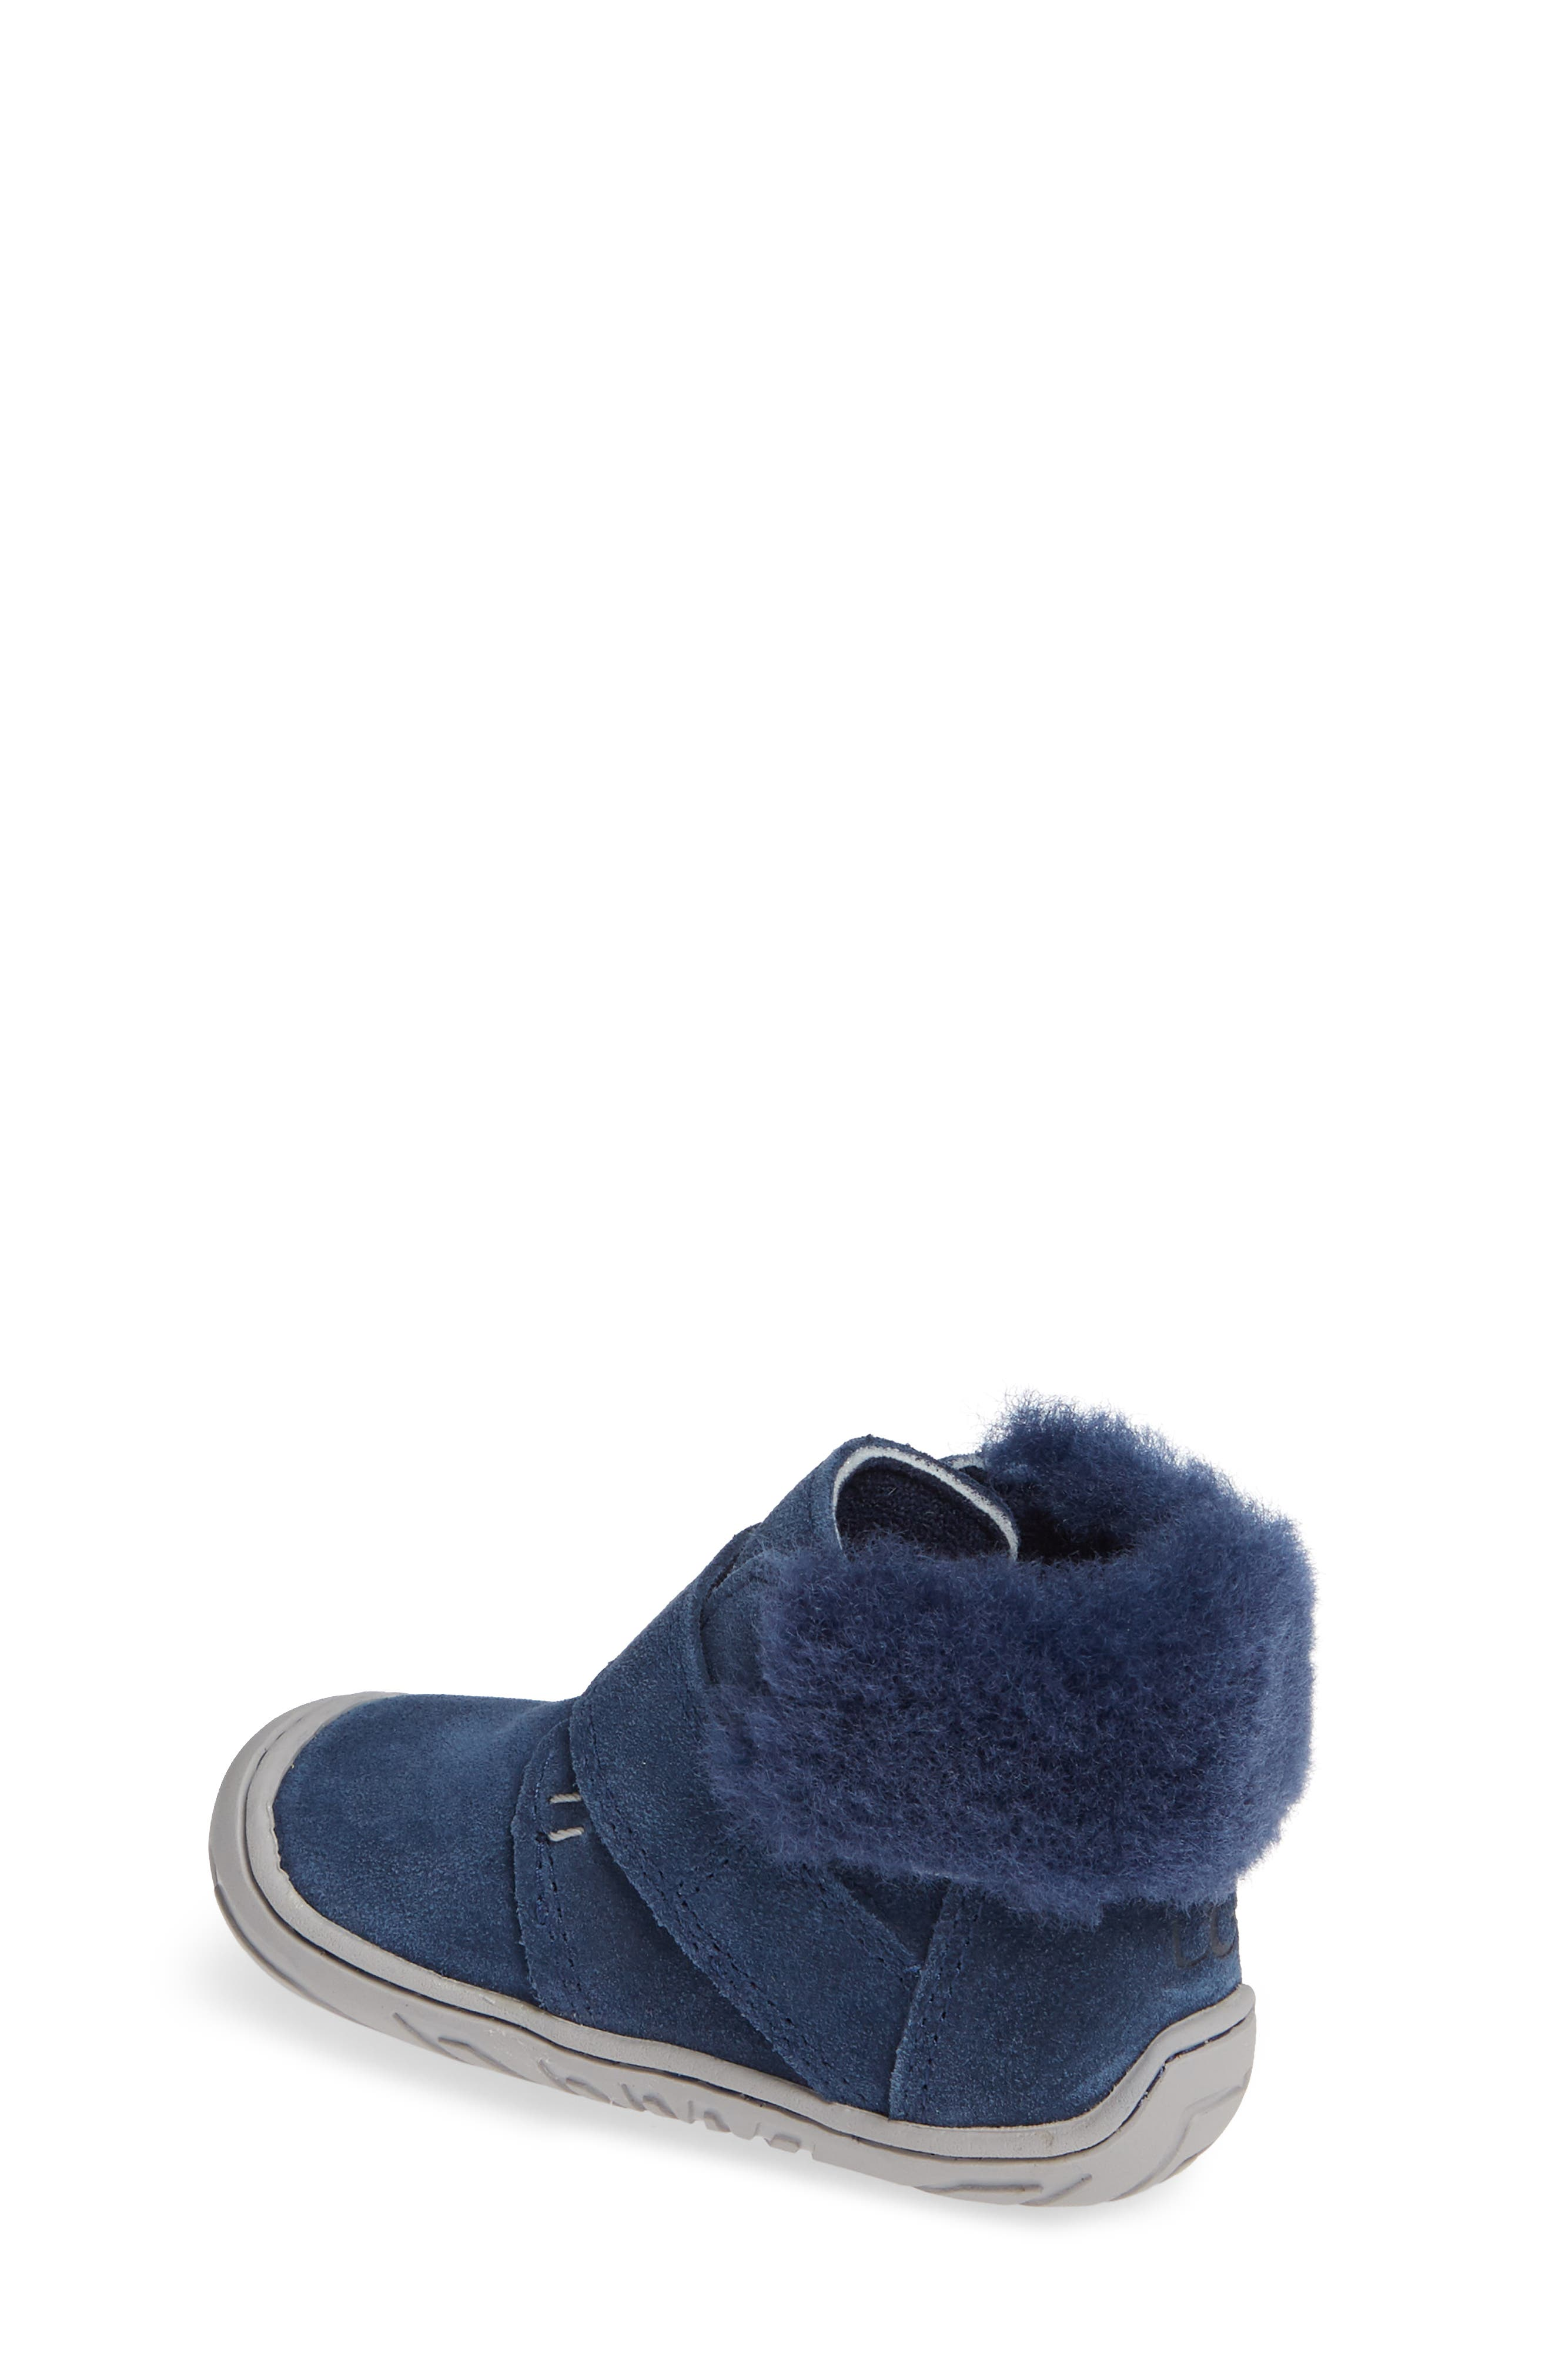 Jorgen Genuine Shearling Bootie,                             Alternate thumbnail 2, color,                             NEW NAVY